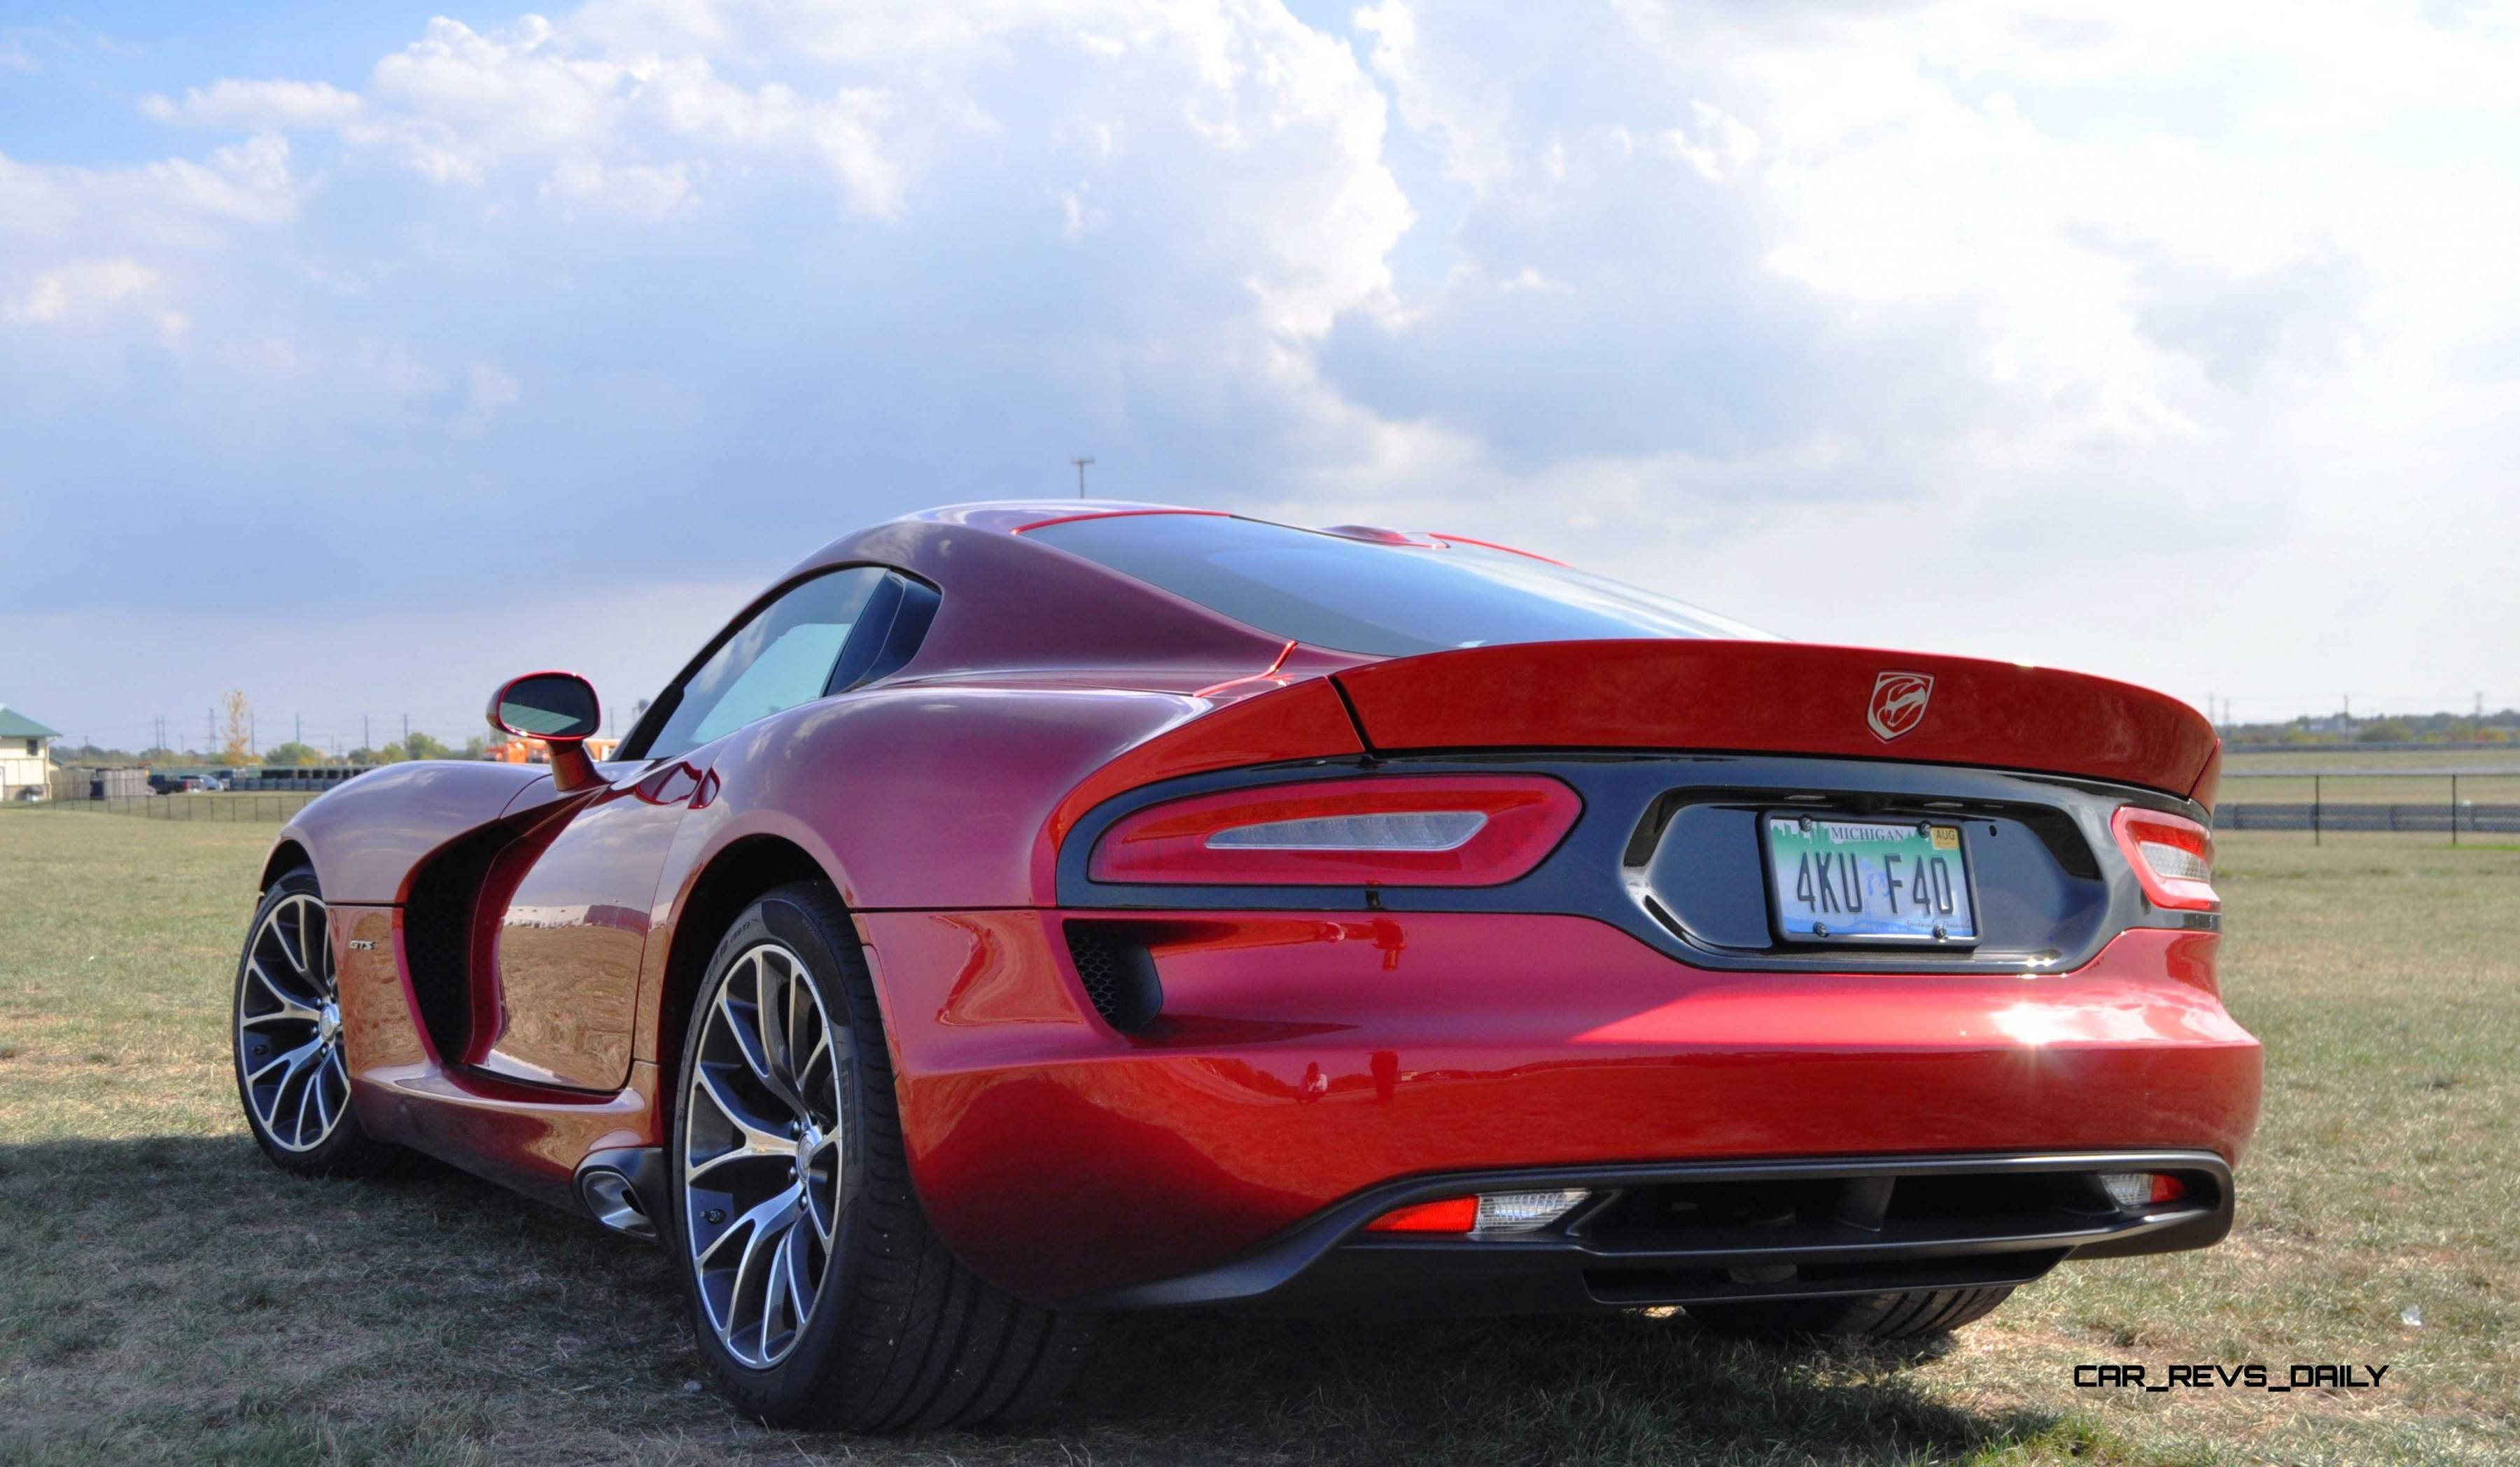 2014 Srt Viper Gts Huge Wallpapers Car Revs Dailycom